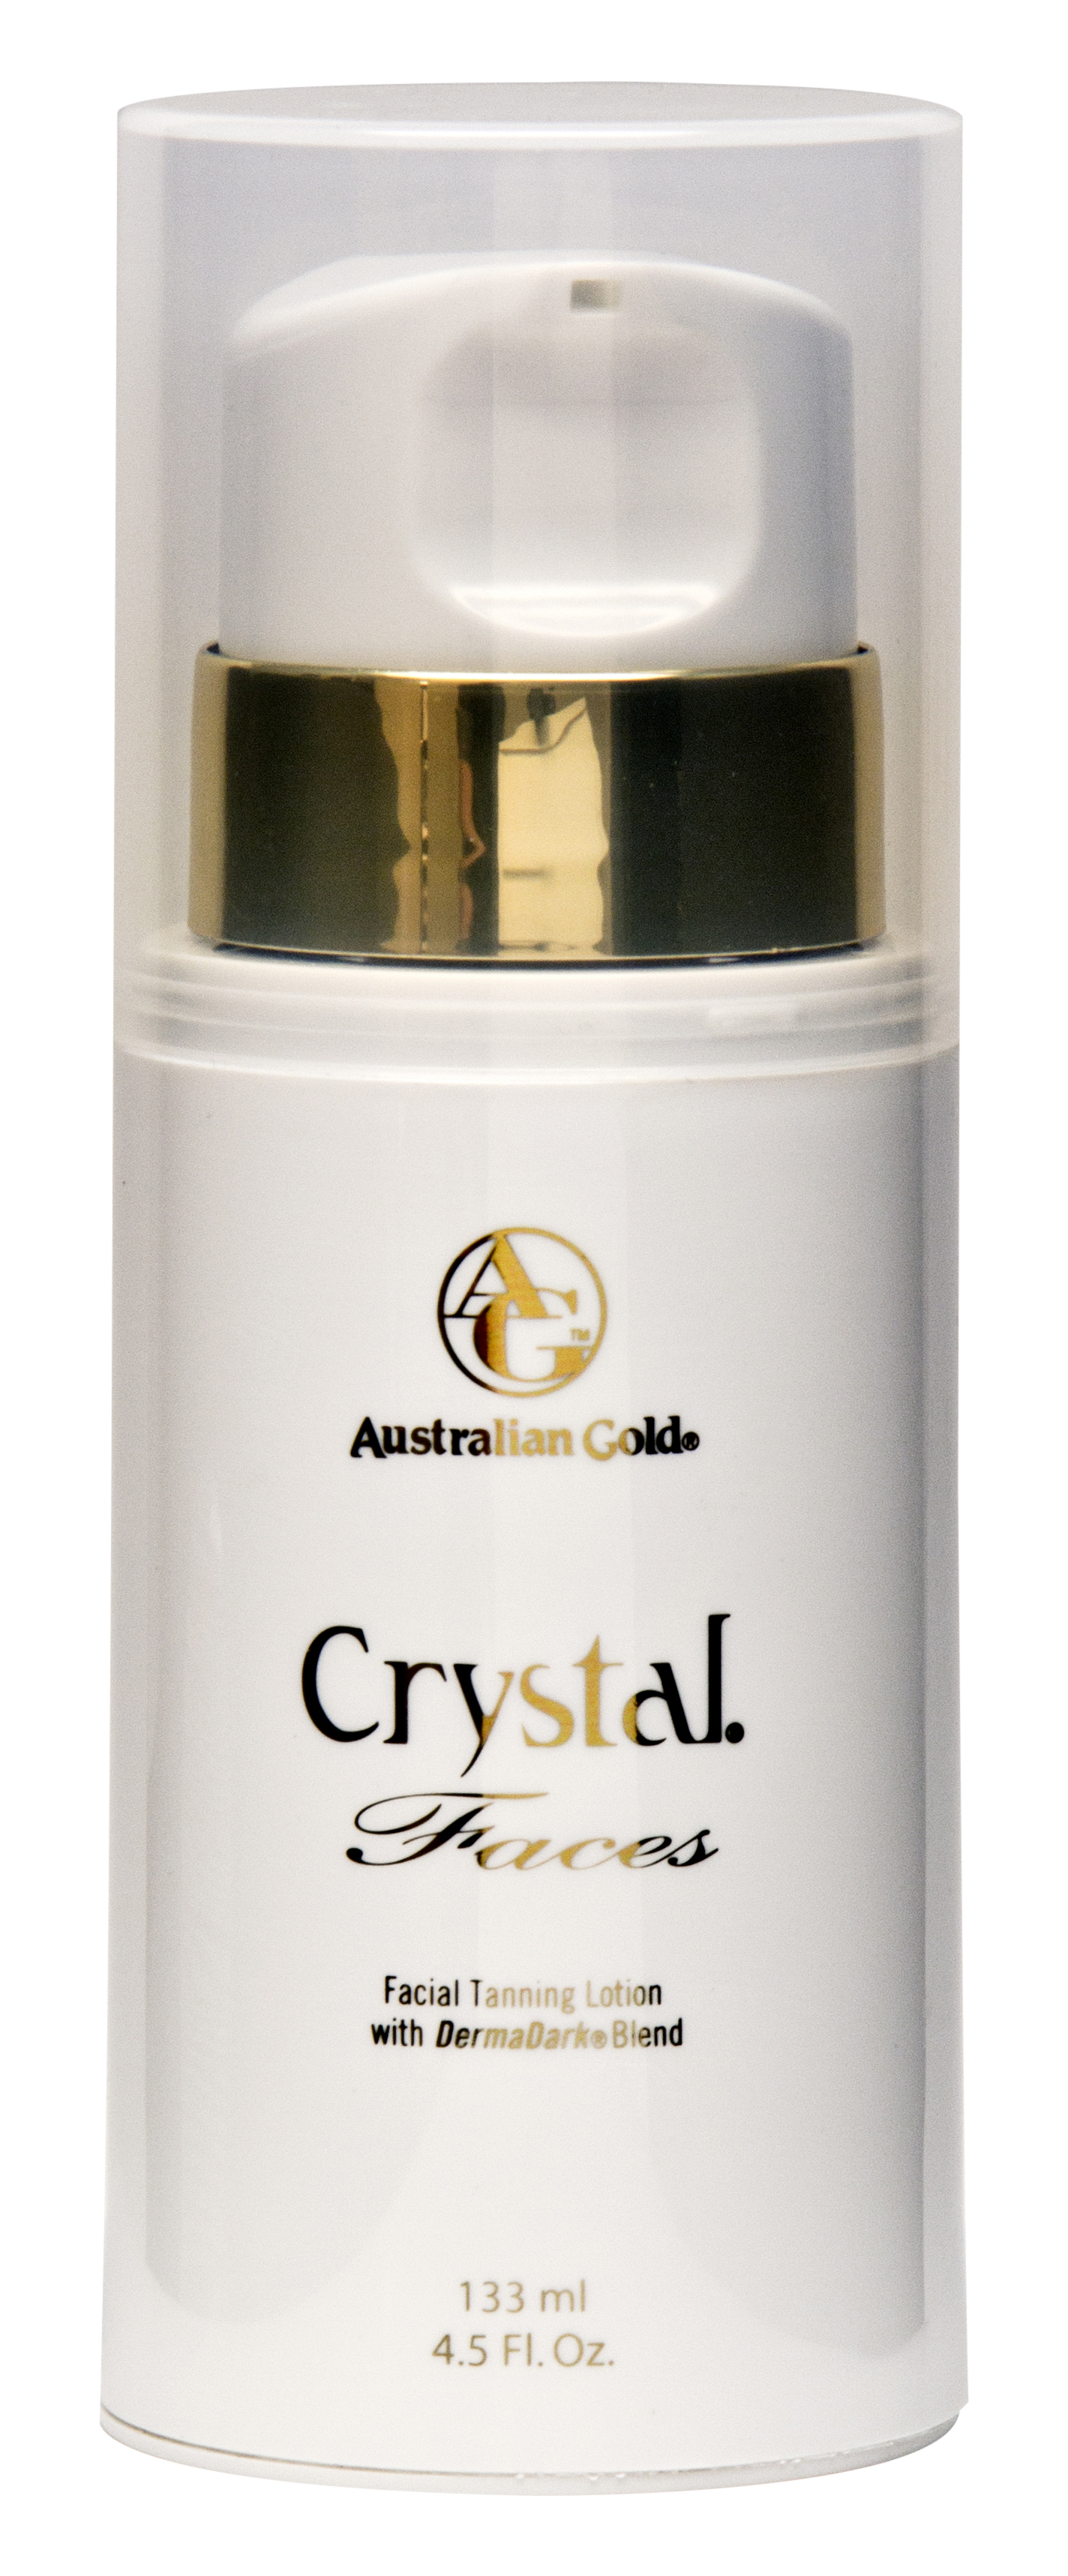 Crystal® Faces Intensifier with DermaDark® Bronzers